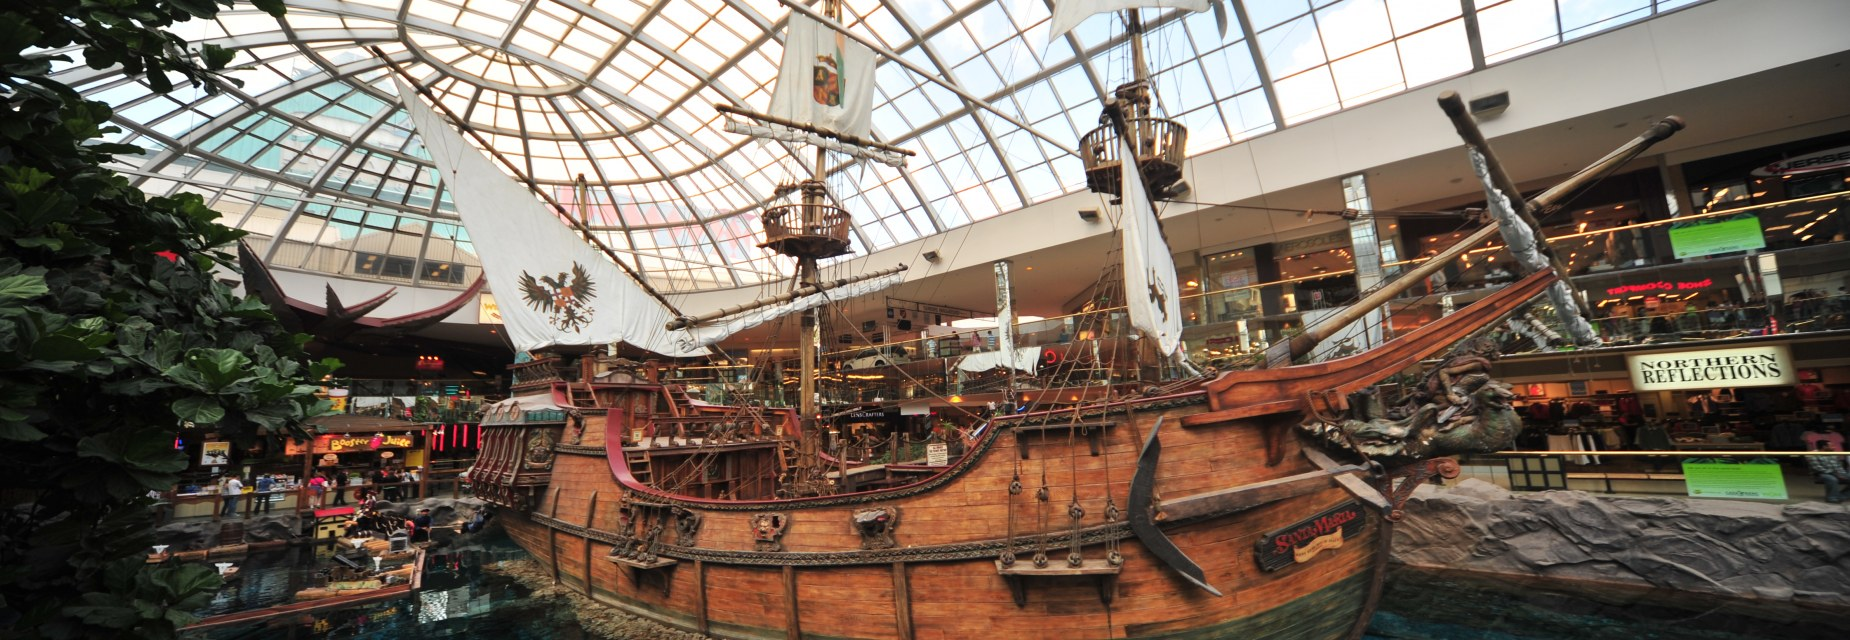 Visit the spectacular pirate ship